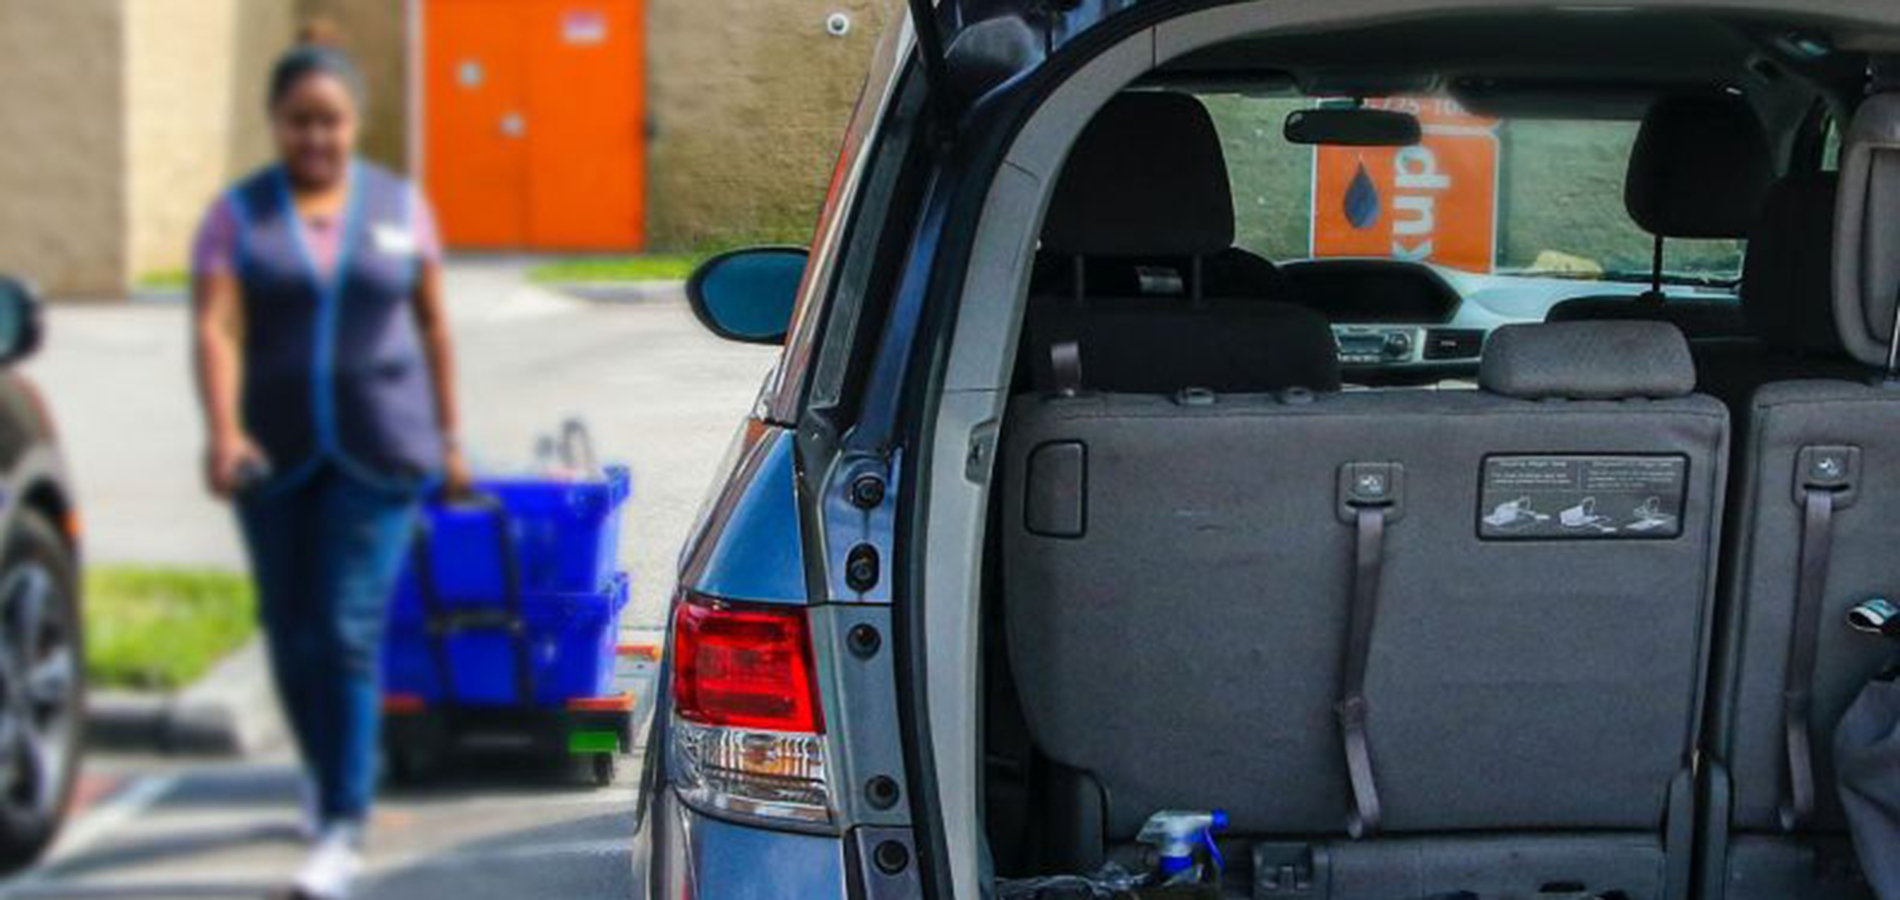 Curbside-Pickup-Solutions-Advanced-Wireless-Communications